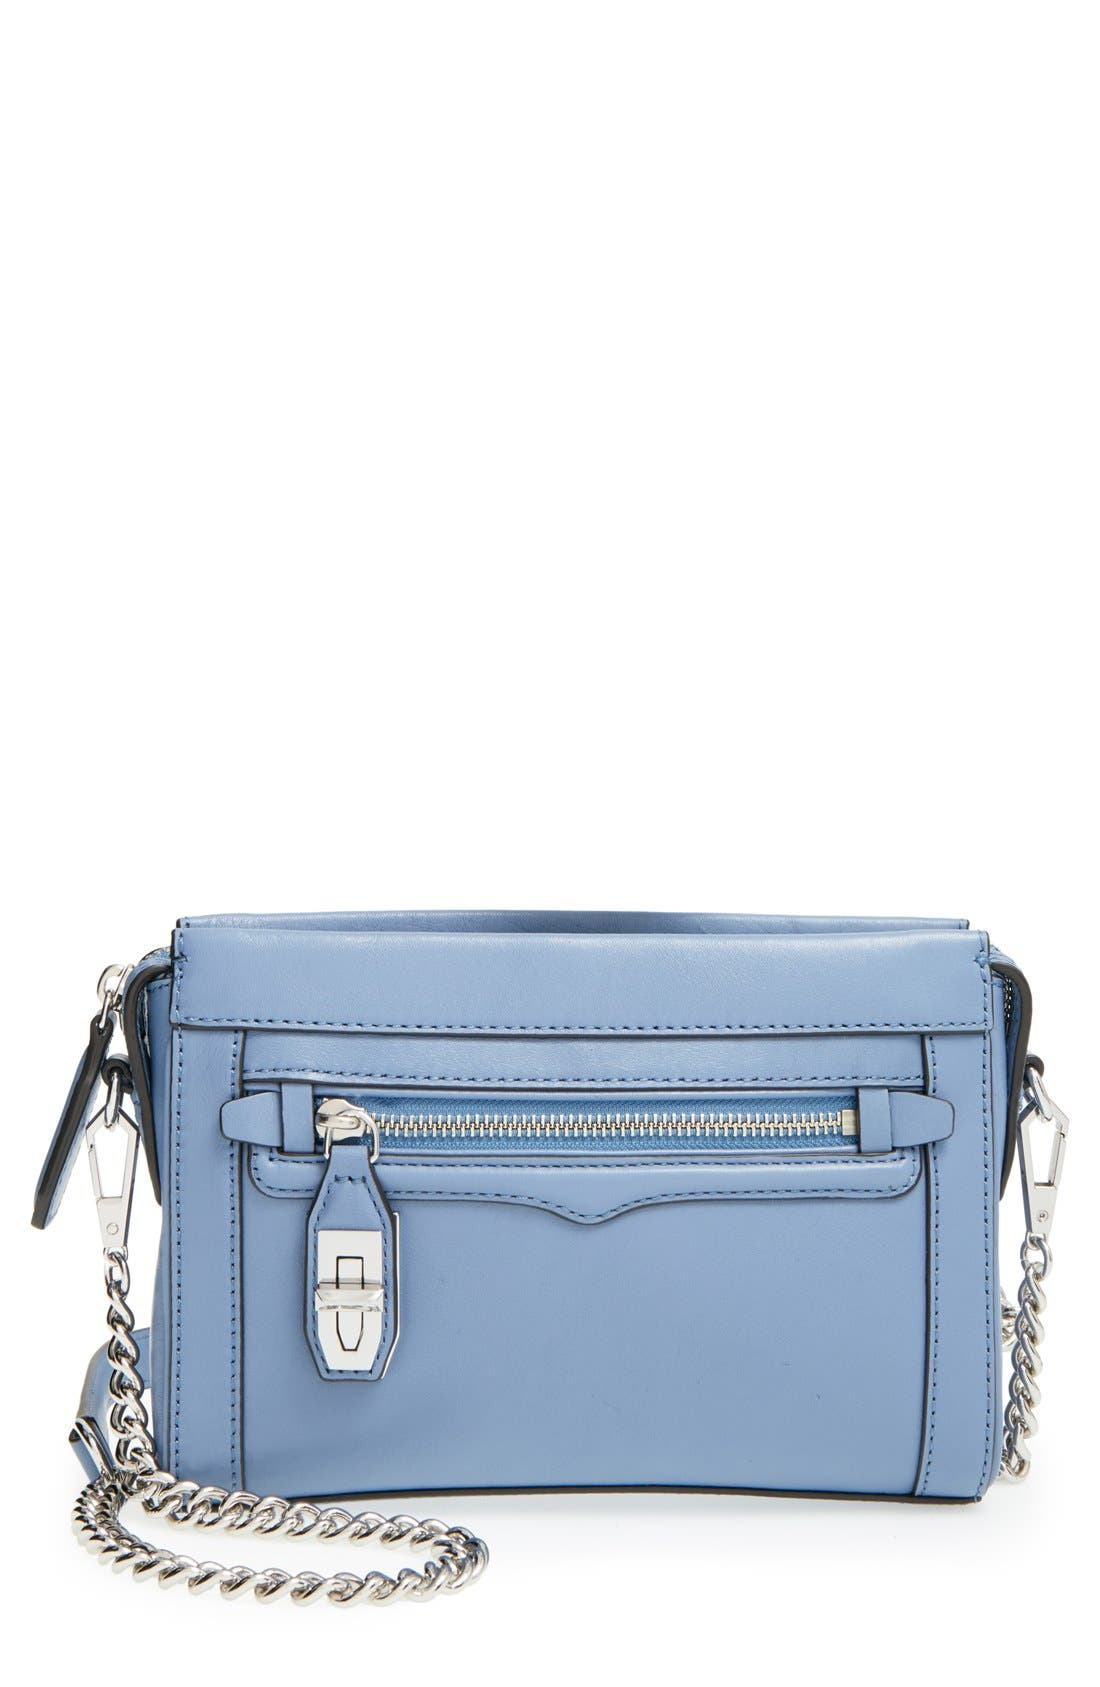 Alternate Image 1 Selected - Rebecca Minkoff 'Mini Crosby' Crossbody Bag